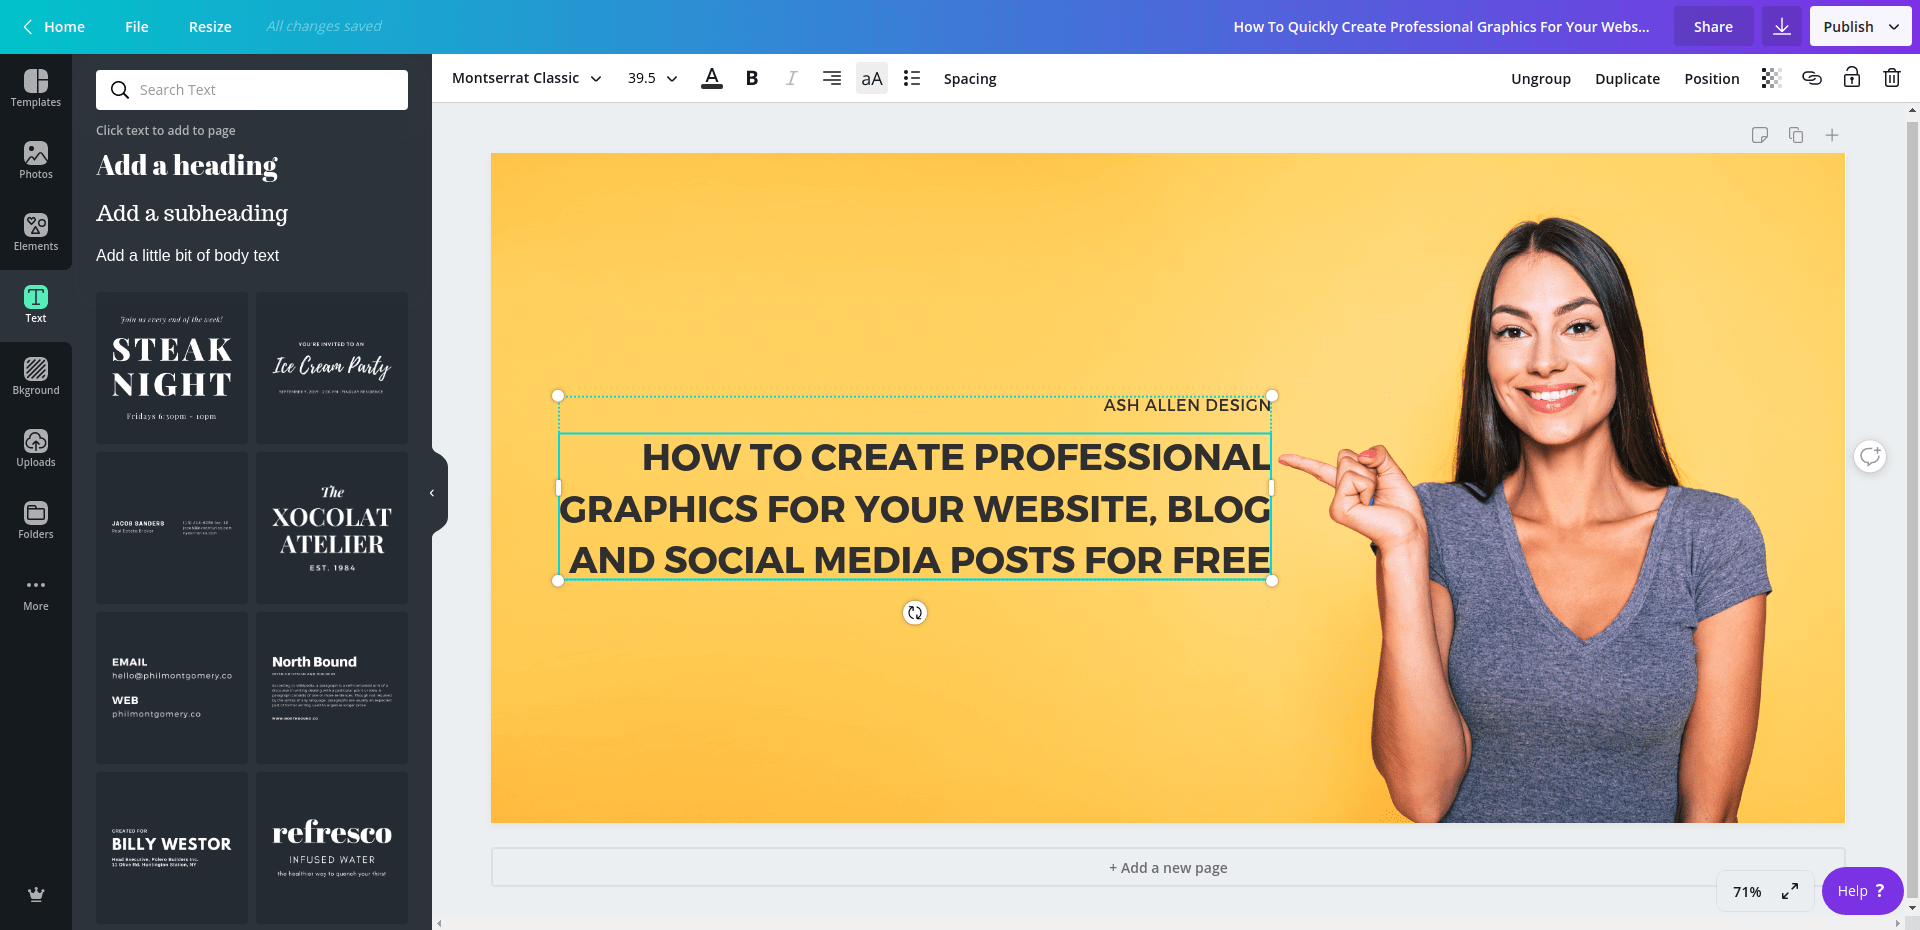 Canva - Create professional images for website design and social media